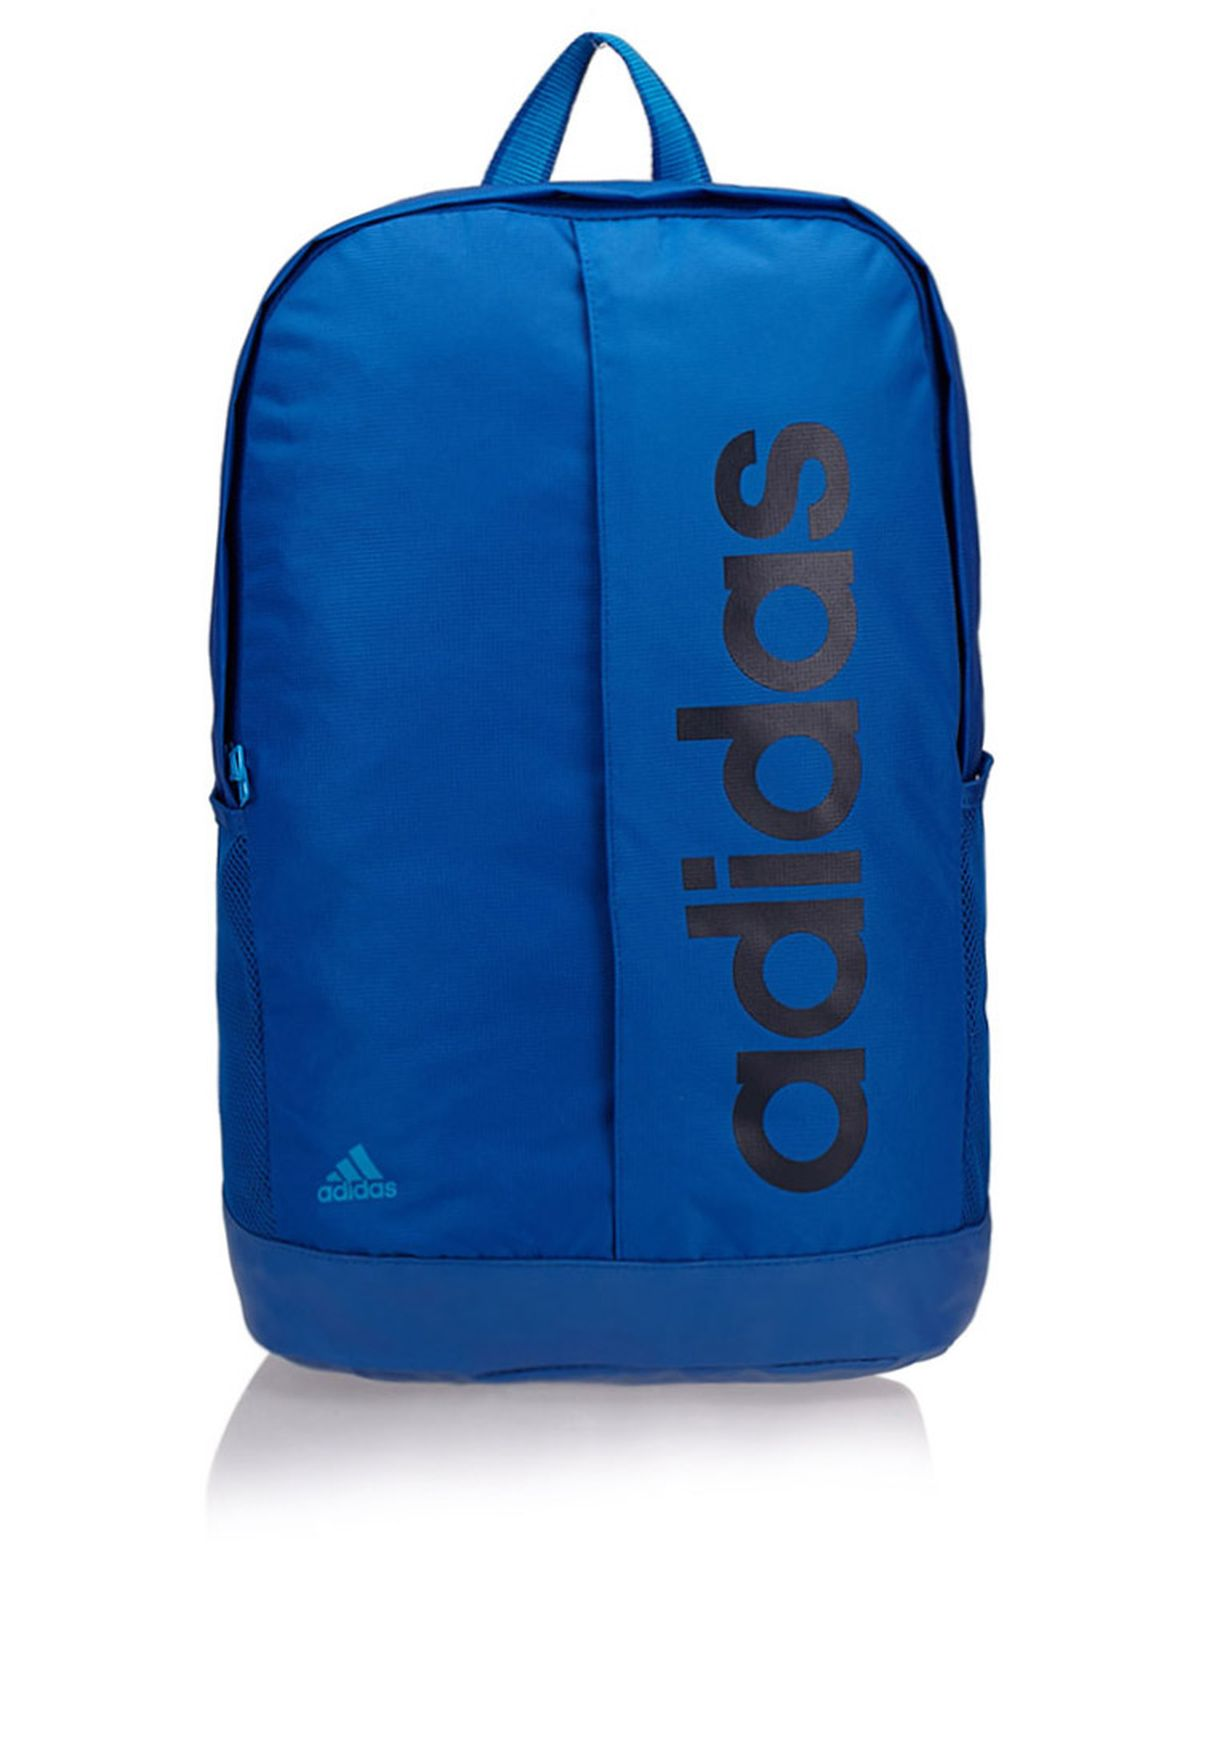 d9bfd9d2d2 Shop adidas blue Linear Performance Backpack M67883 for Men in Saudi ...